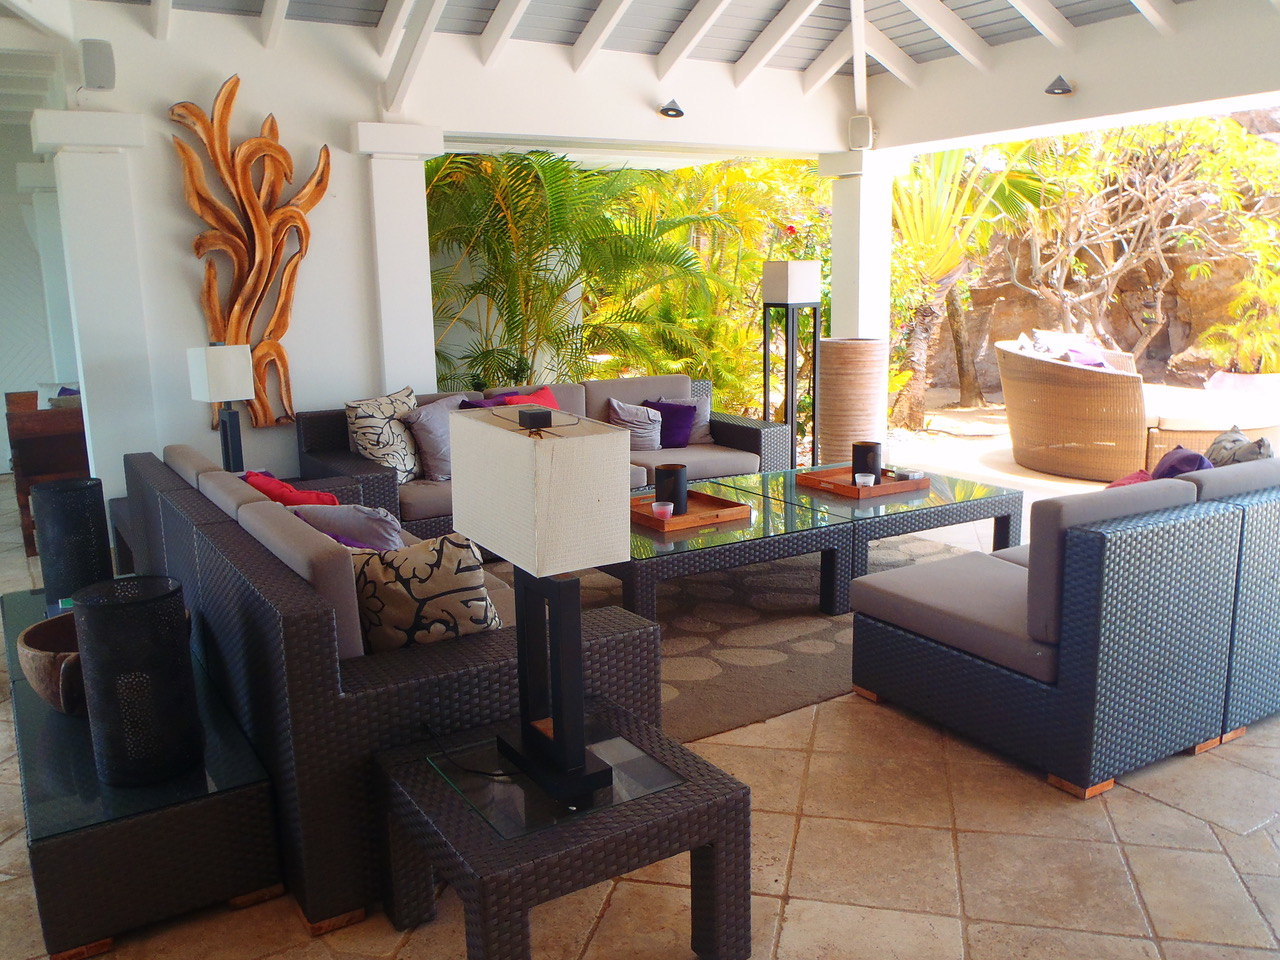 Villa Zen - Seaview Villa for Rent With Jacuzzi and Pool - Patio